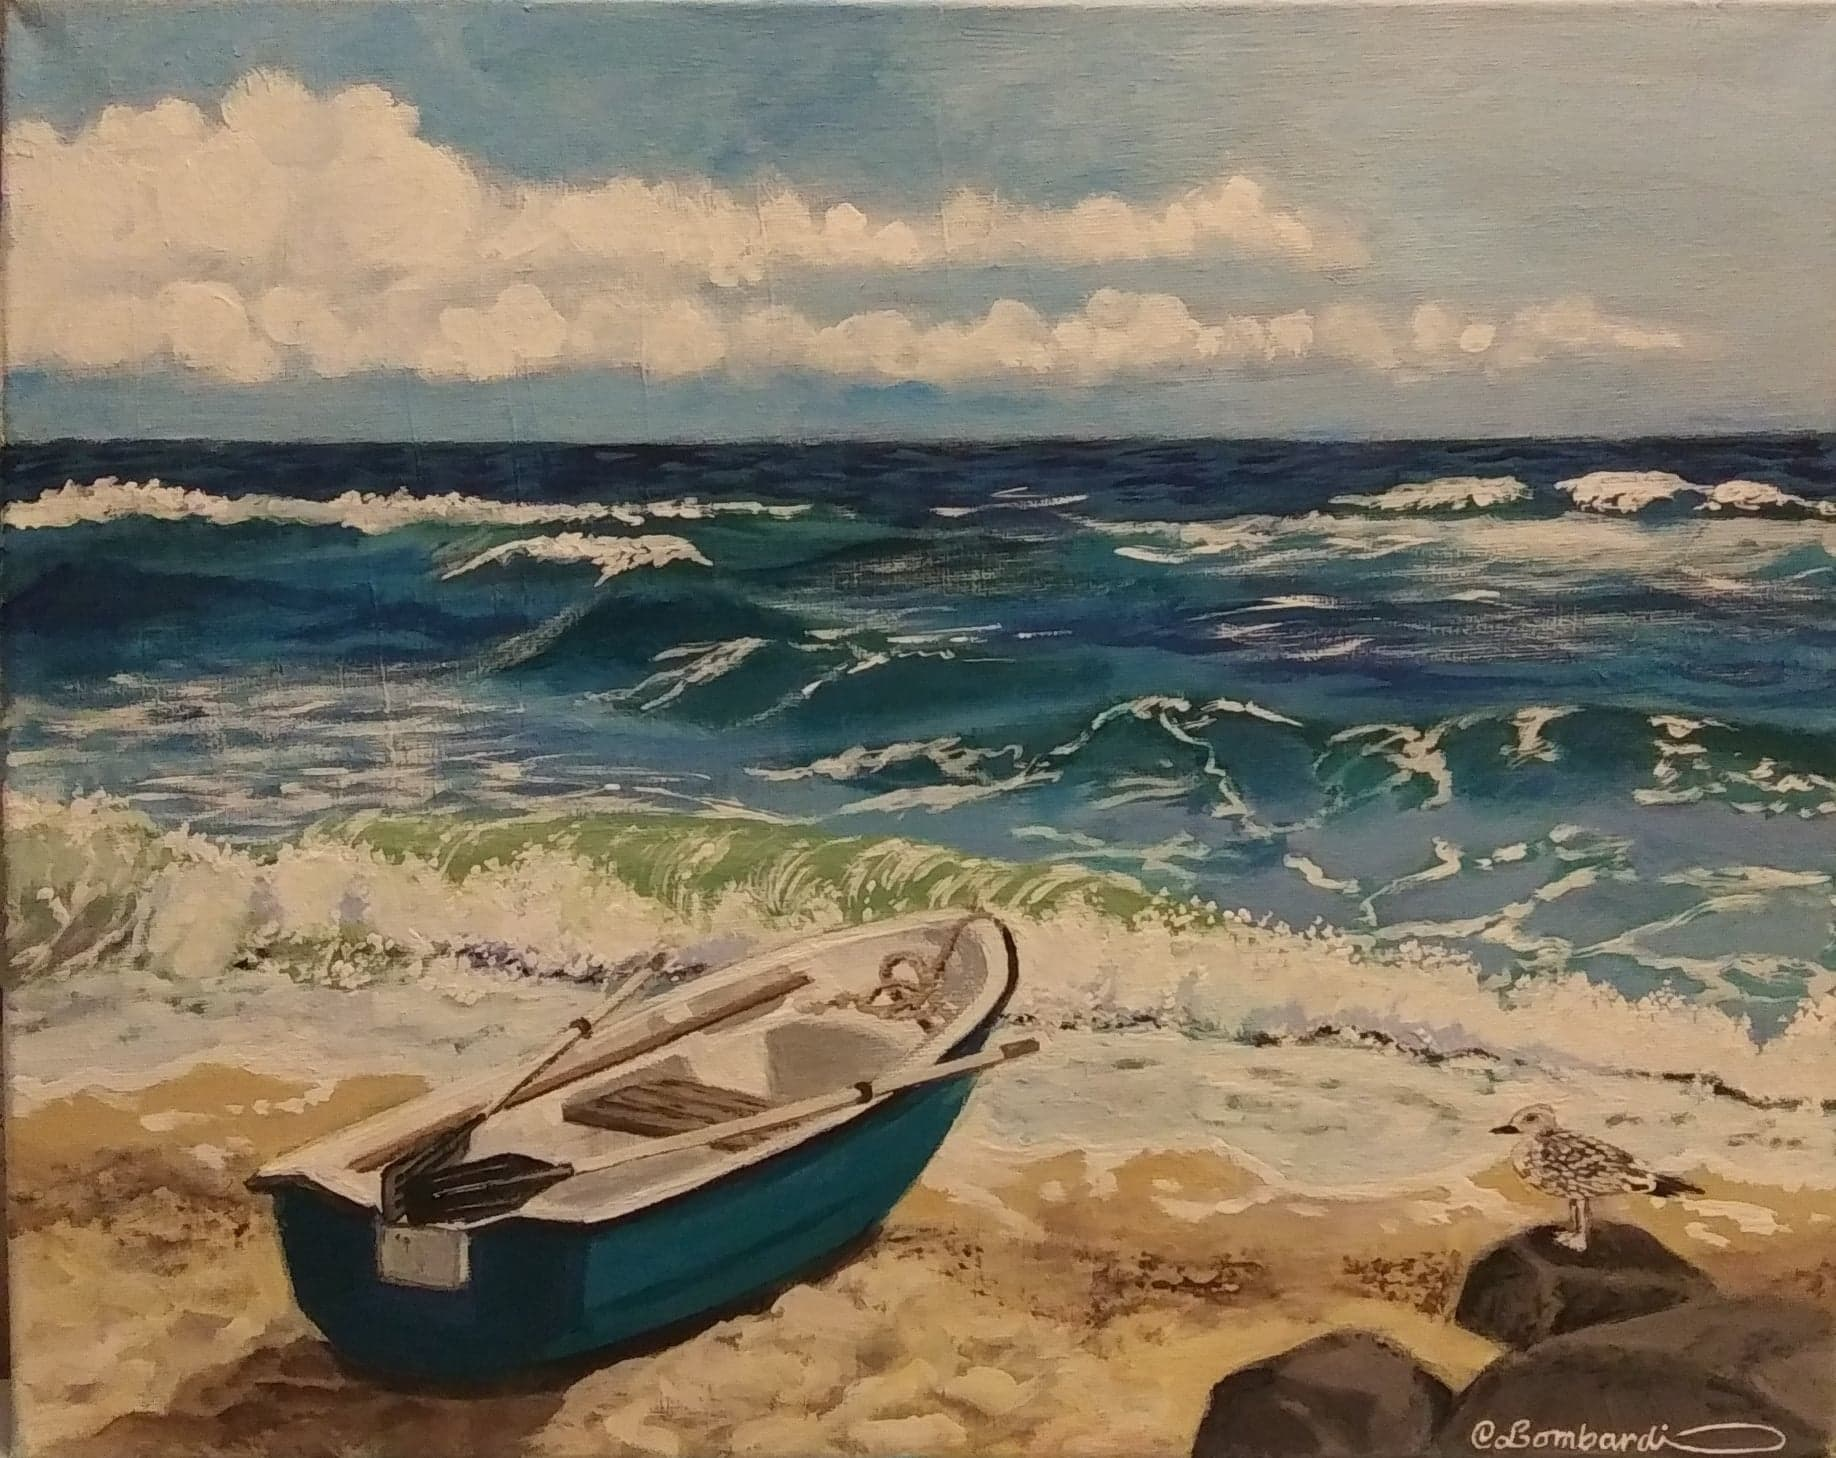 <strong>A show of sea-themed works by Christine Lombardi at the Kent, Conn., library is on display until Oct. 30. </strong><em>Photo courtesy Kent Memorial Library</em>